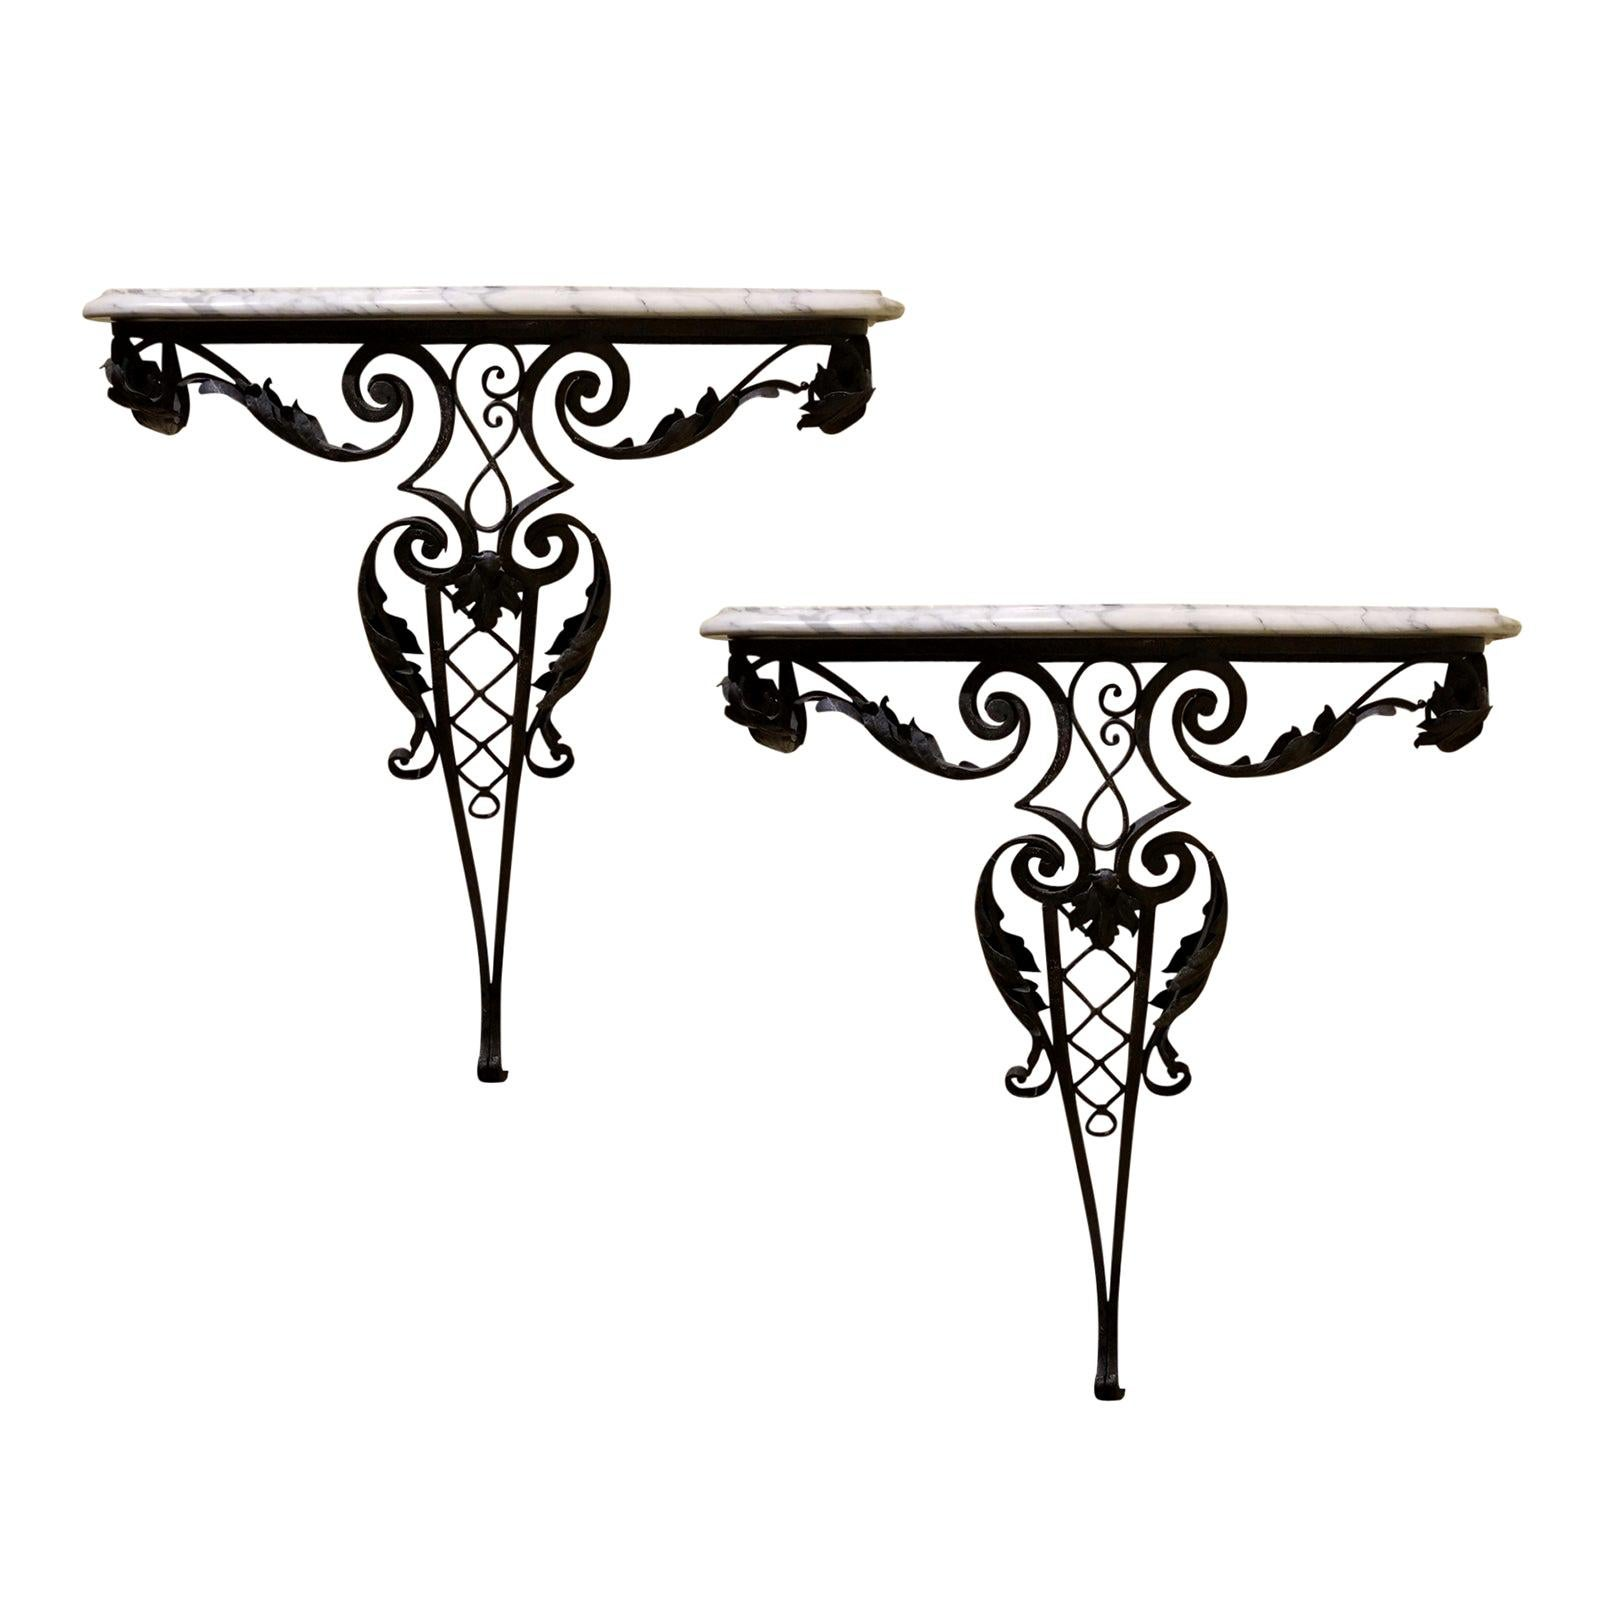 Pair of 20th Century Louis XV Style Iron Wall Mount Consoles, White Marble Tops